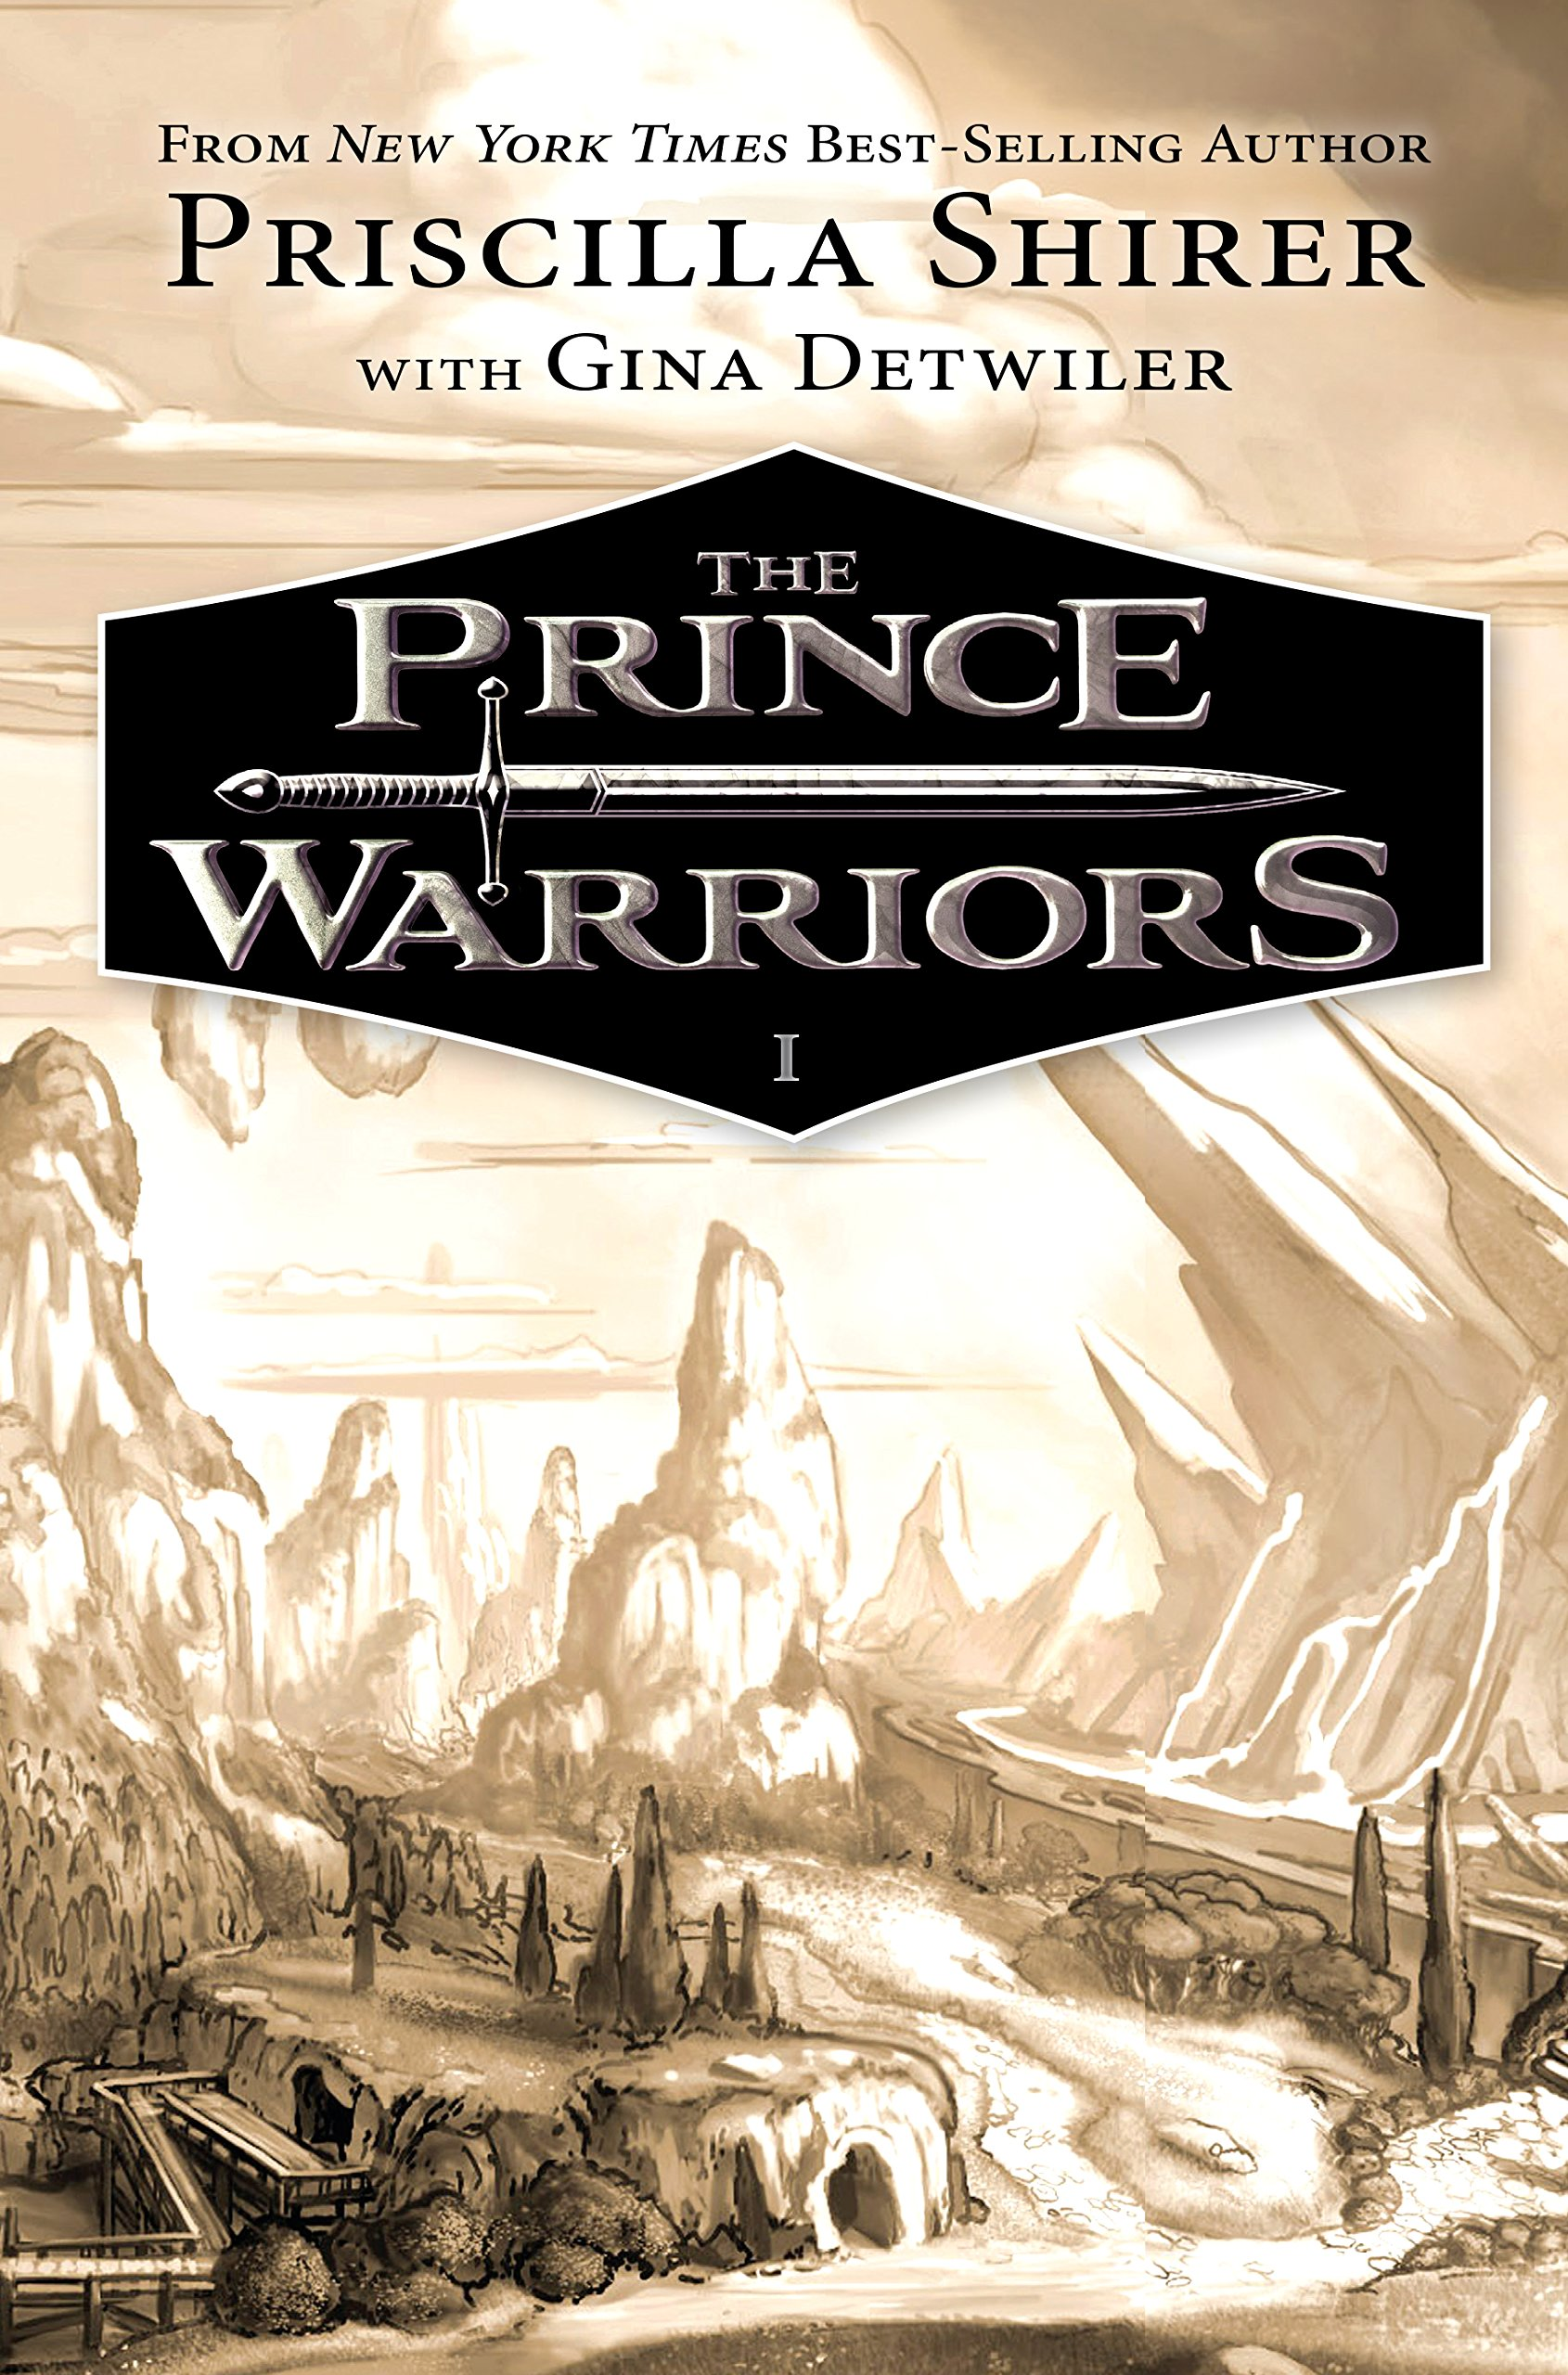 The Prince Warriors: Amazon.es: Priscilla Shirer, Gina Detwiler: Libros en idiomas extranjeros